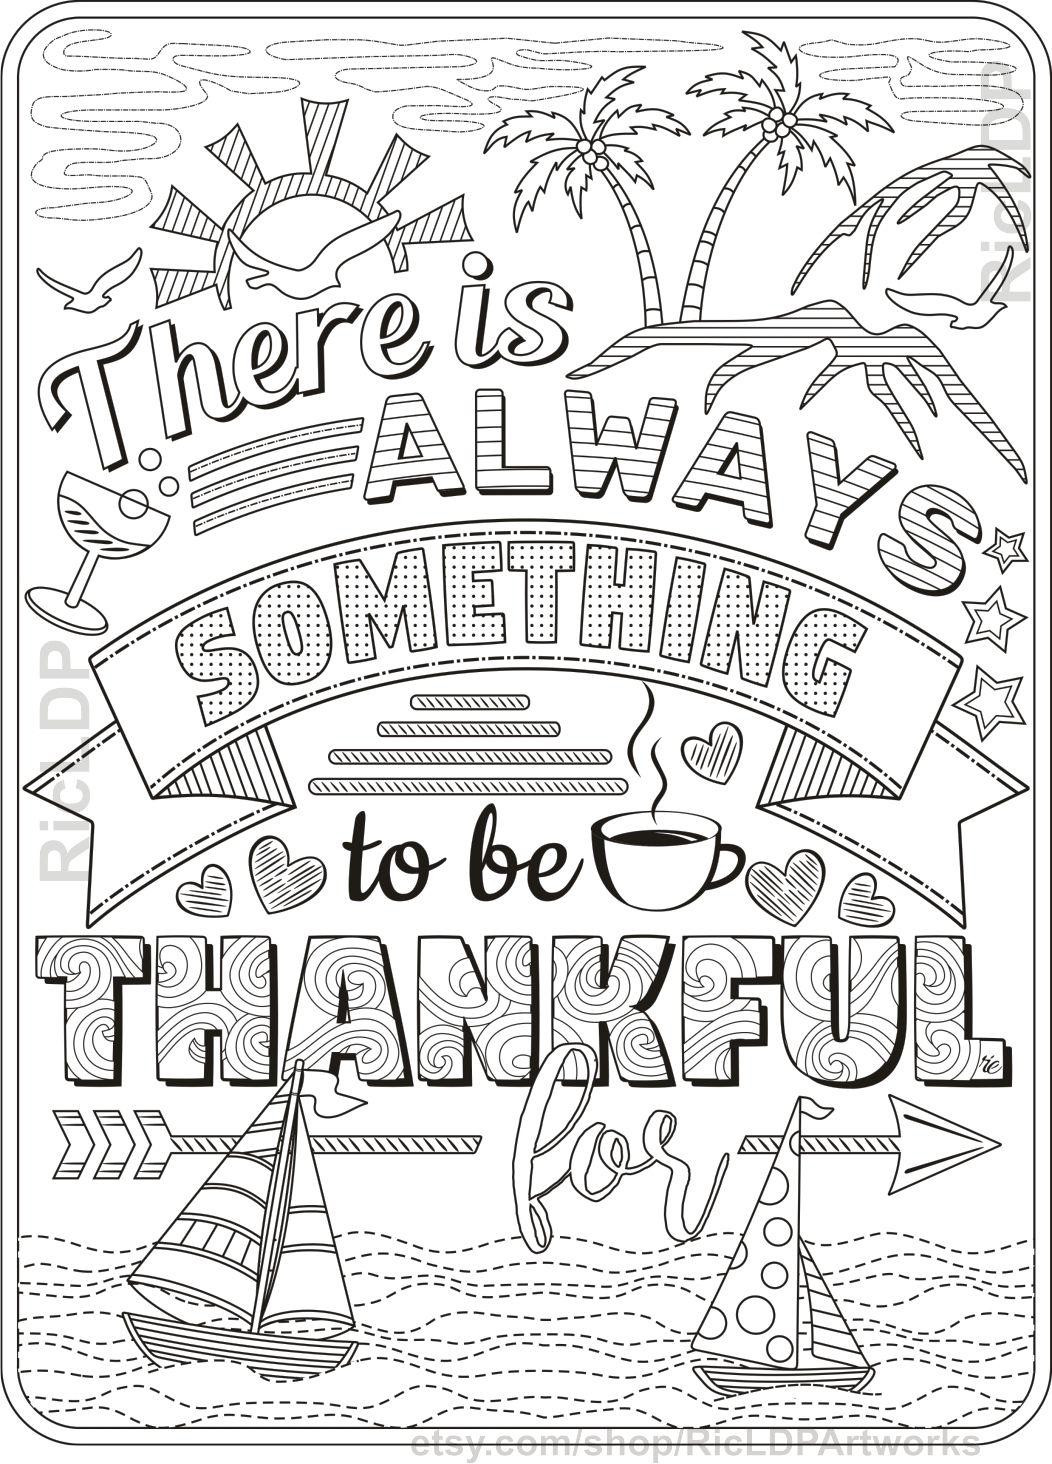 Thanksgiving Coloring Page Thanksgiving Coloring Pages Quote Coloring Pages Coloring Pages For Grown Ups